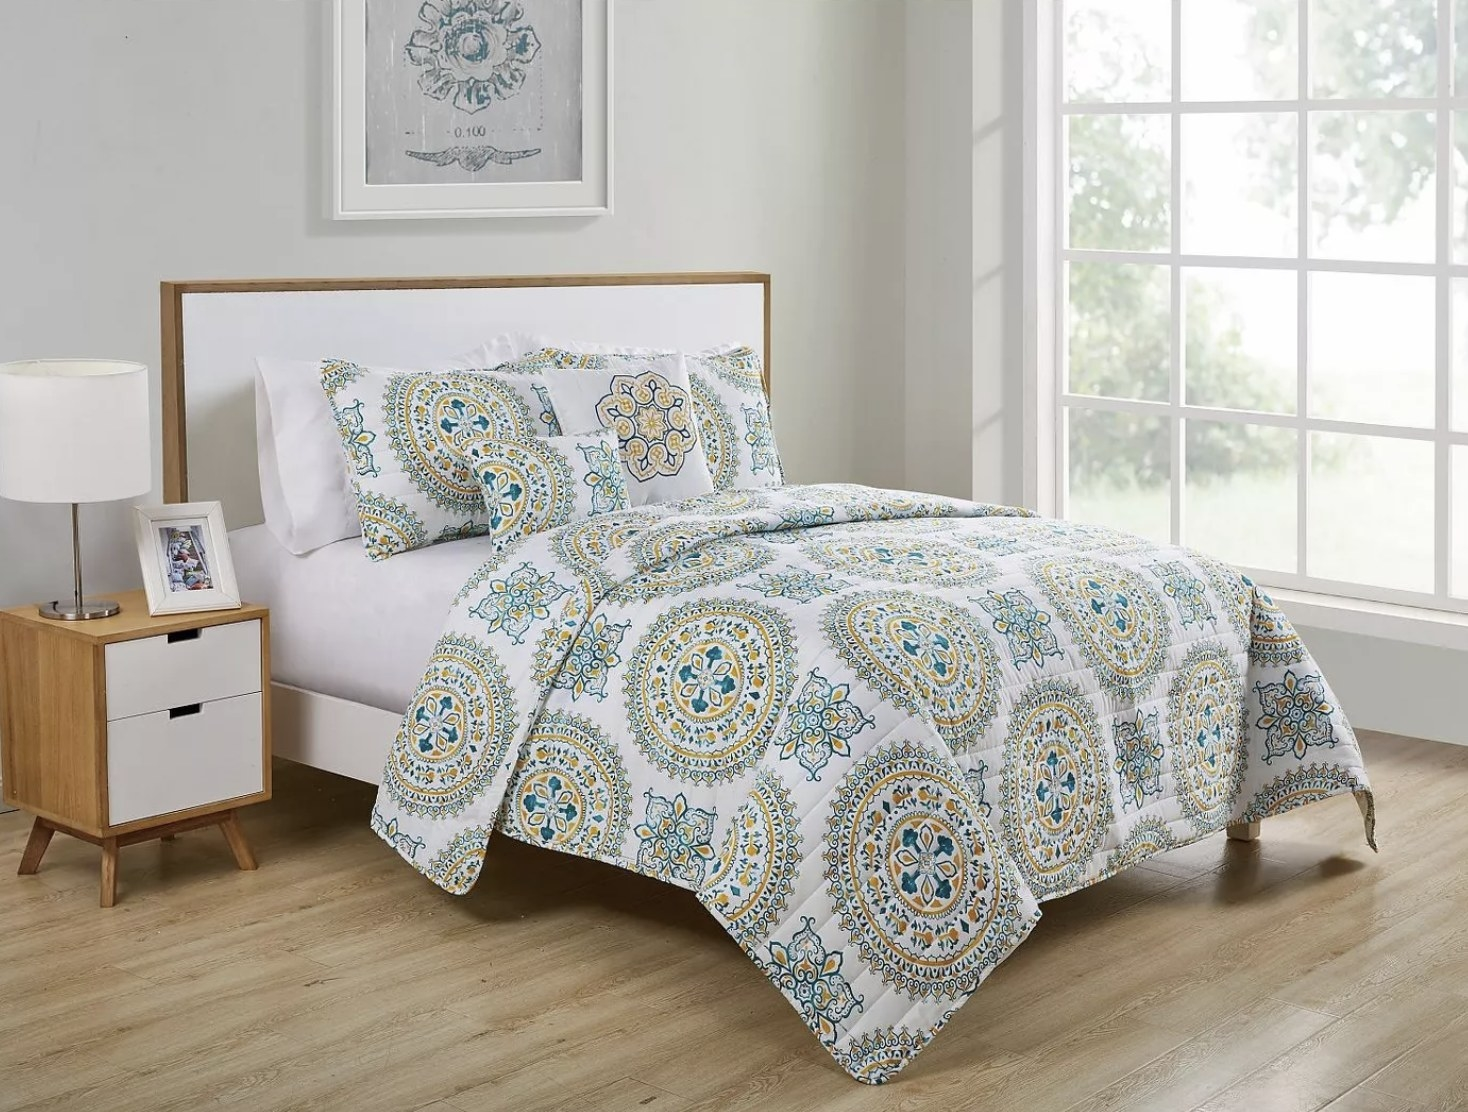 An aqua medallion pattern quilt set on top of a bed in a bedroom